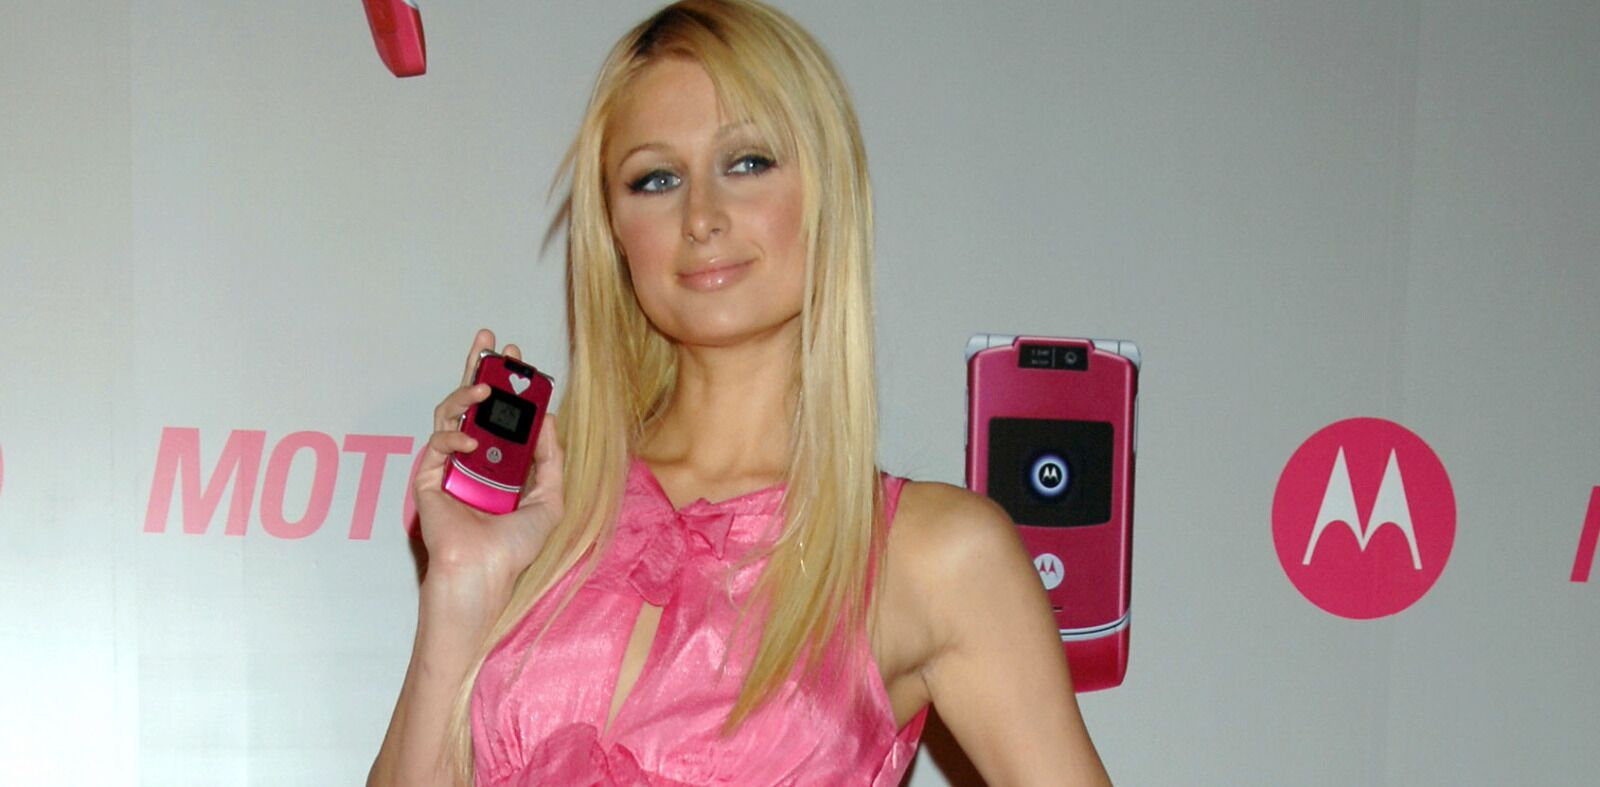 15 pop culture throwbacks from when the Motorola Razr was hot